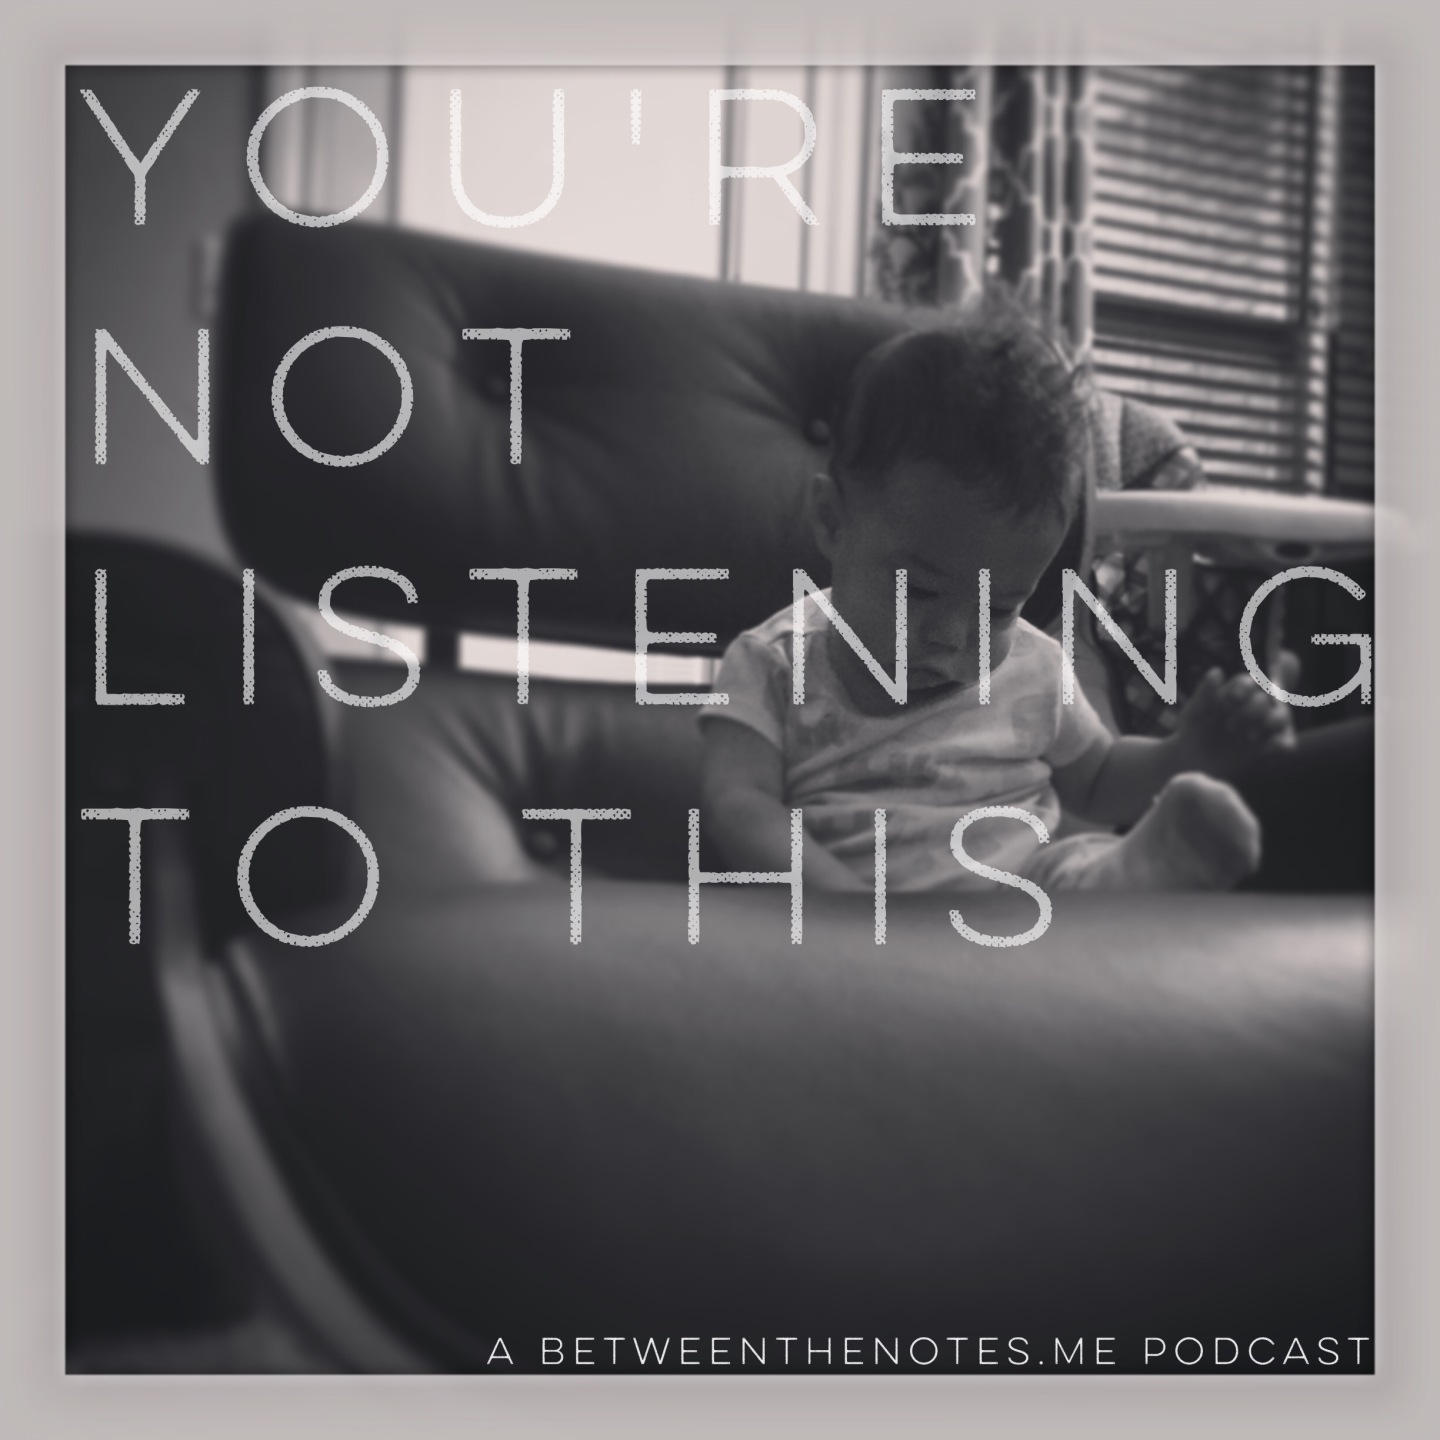 You're Not Listening To This: Episode 4 – A Conversation on Conversations